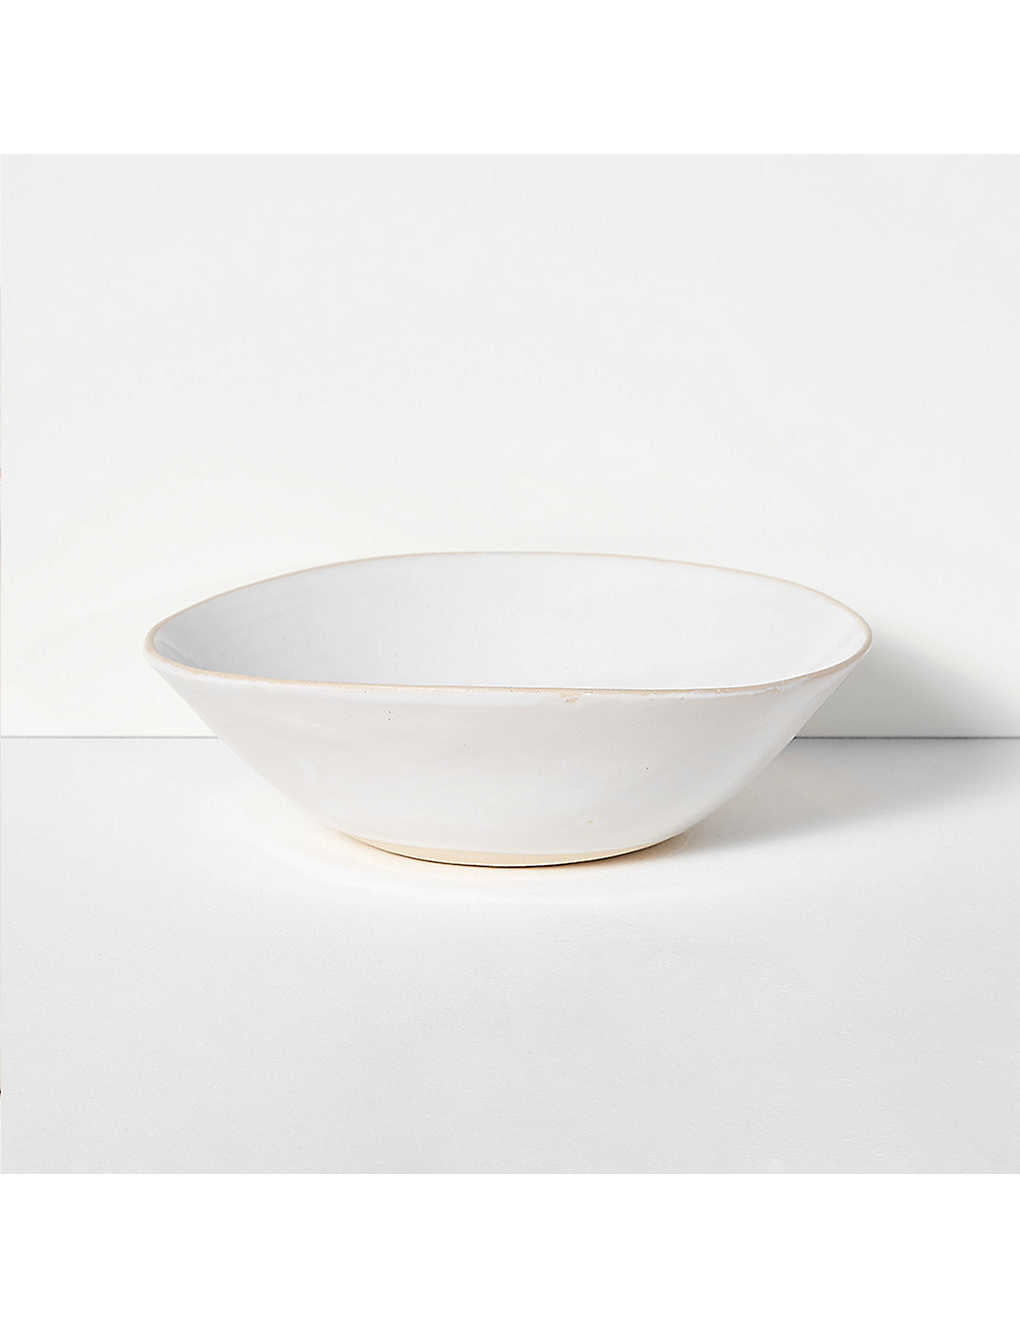 THE CONRAN SHOP: Wonki Ware organic sand medium salad bowl 26cm